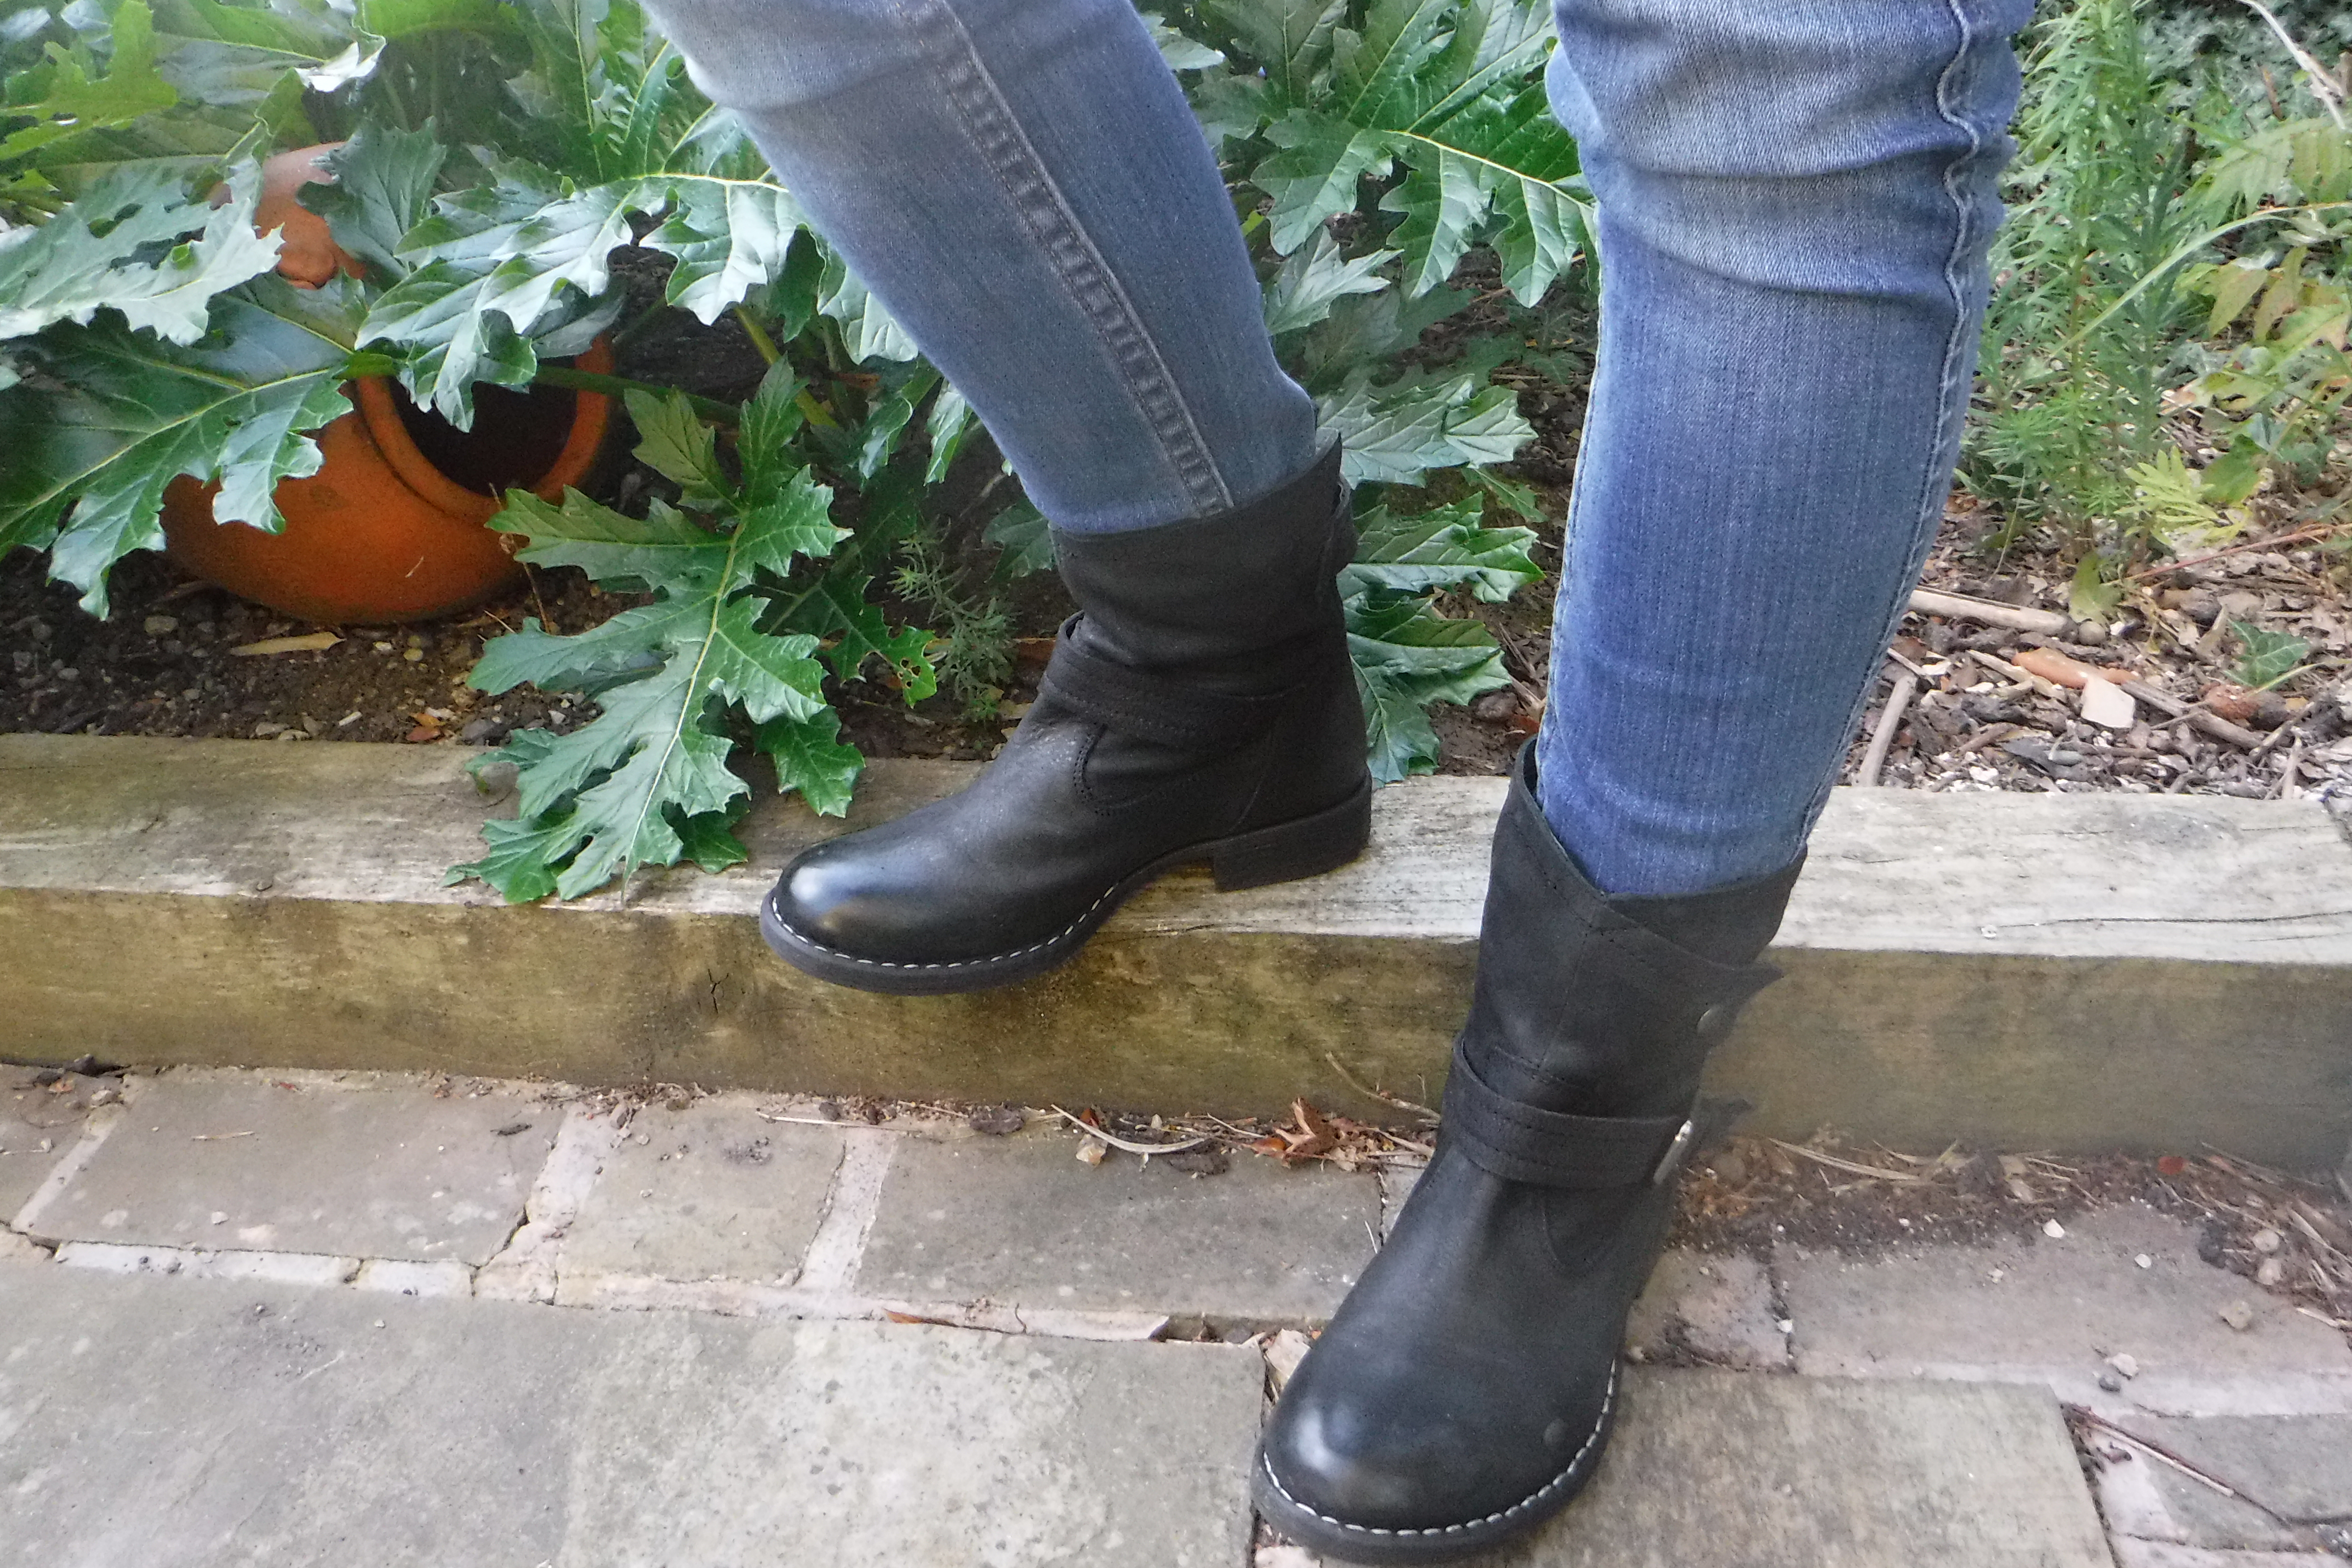 Lotus Lilian Ankle Boots Review. black leather boots with military strap detailing and white stitching